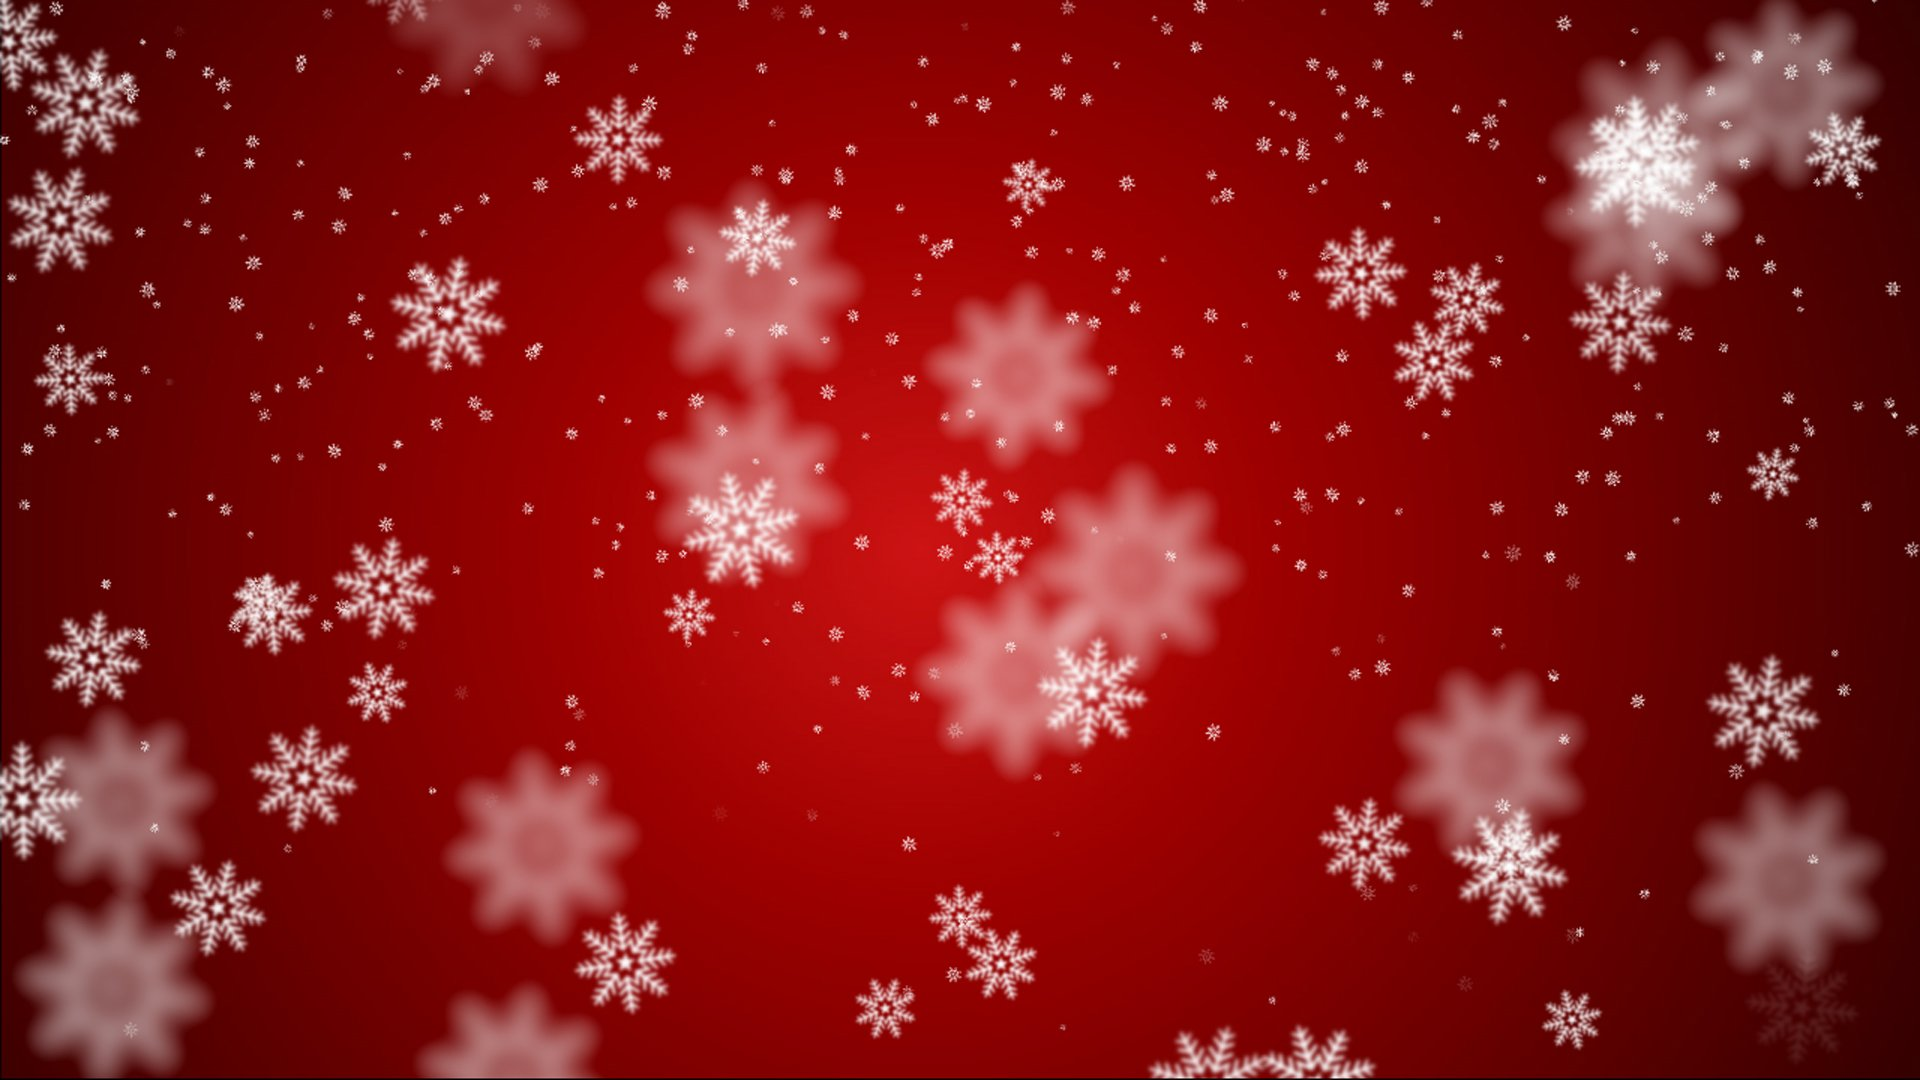 Christmas Backgrounds Wallpapers Photoshop Patterns 1920x1080 1920x1080